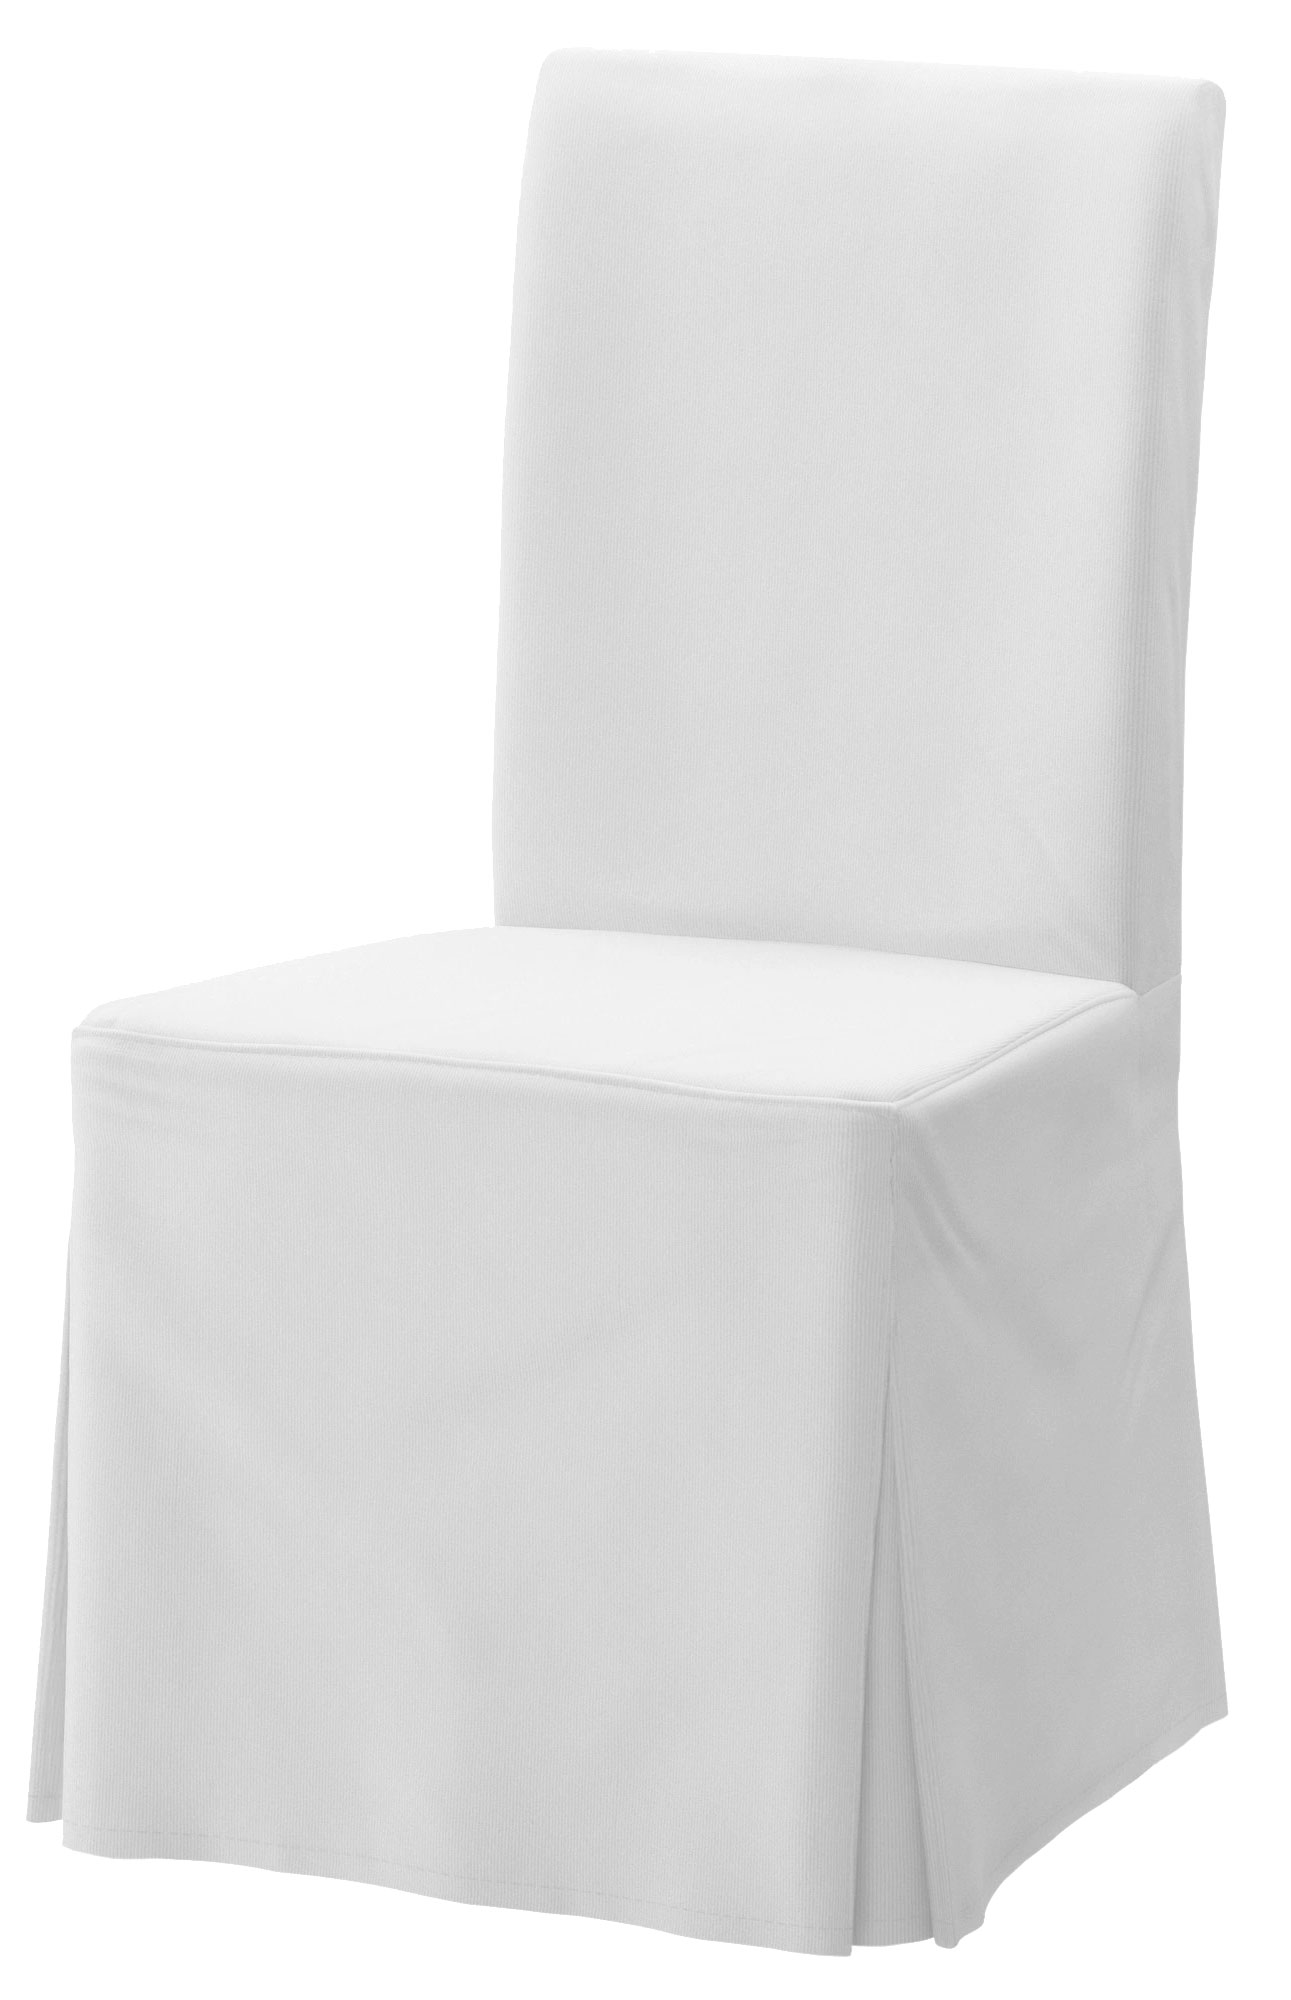 Charmant Chair Cover